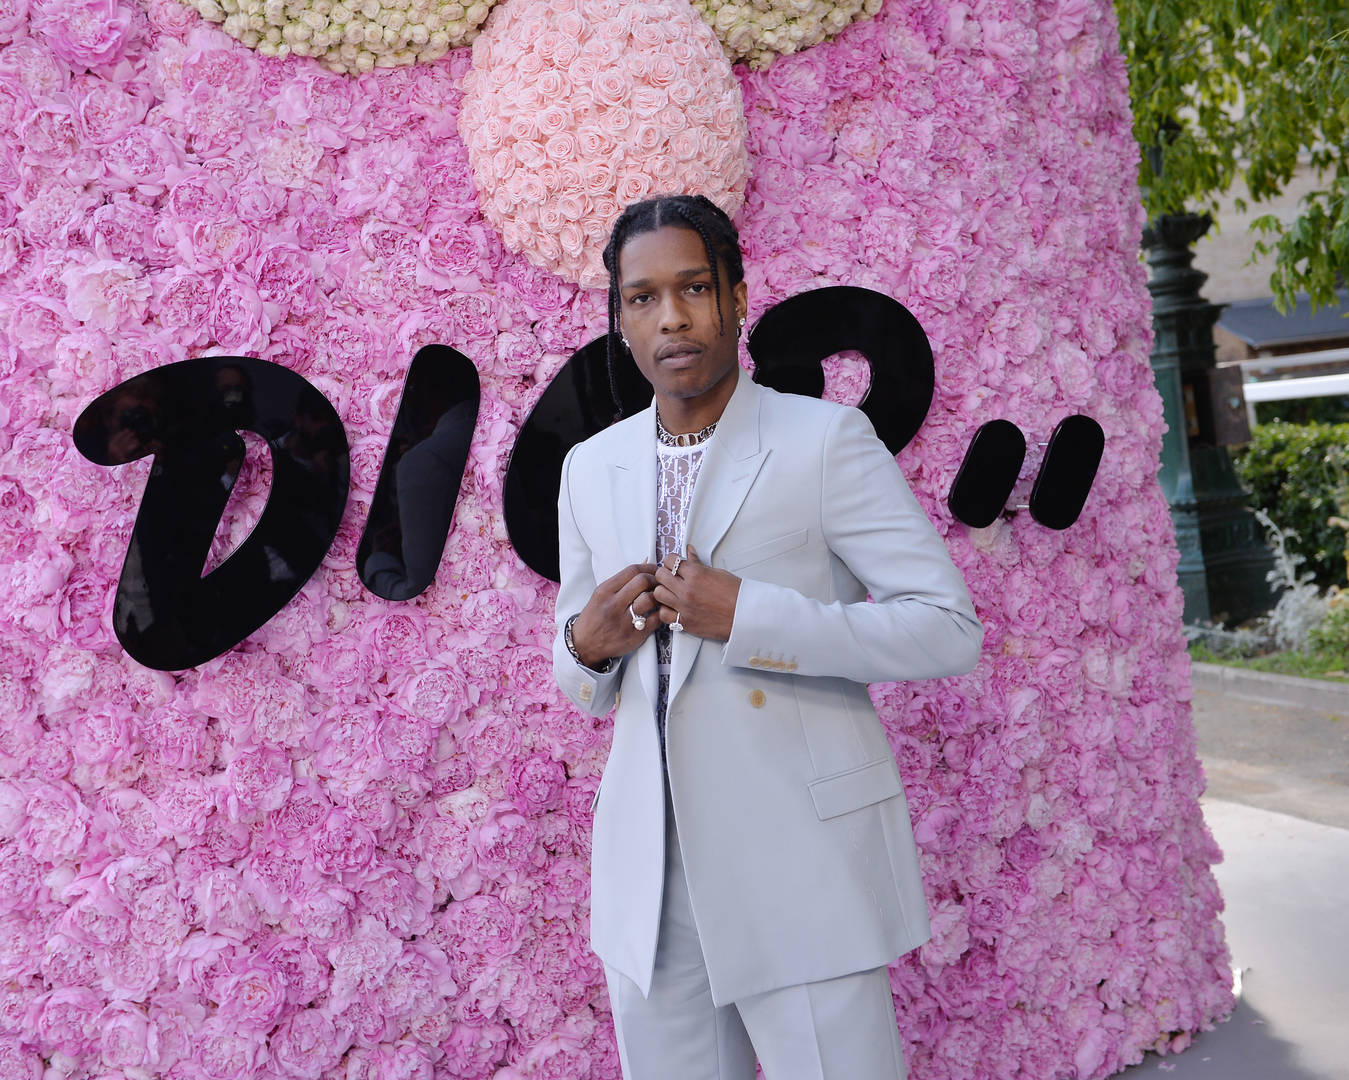 A$AP Rocky charged with assault over fight in Sweden